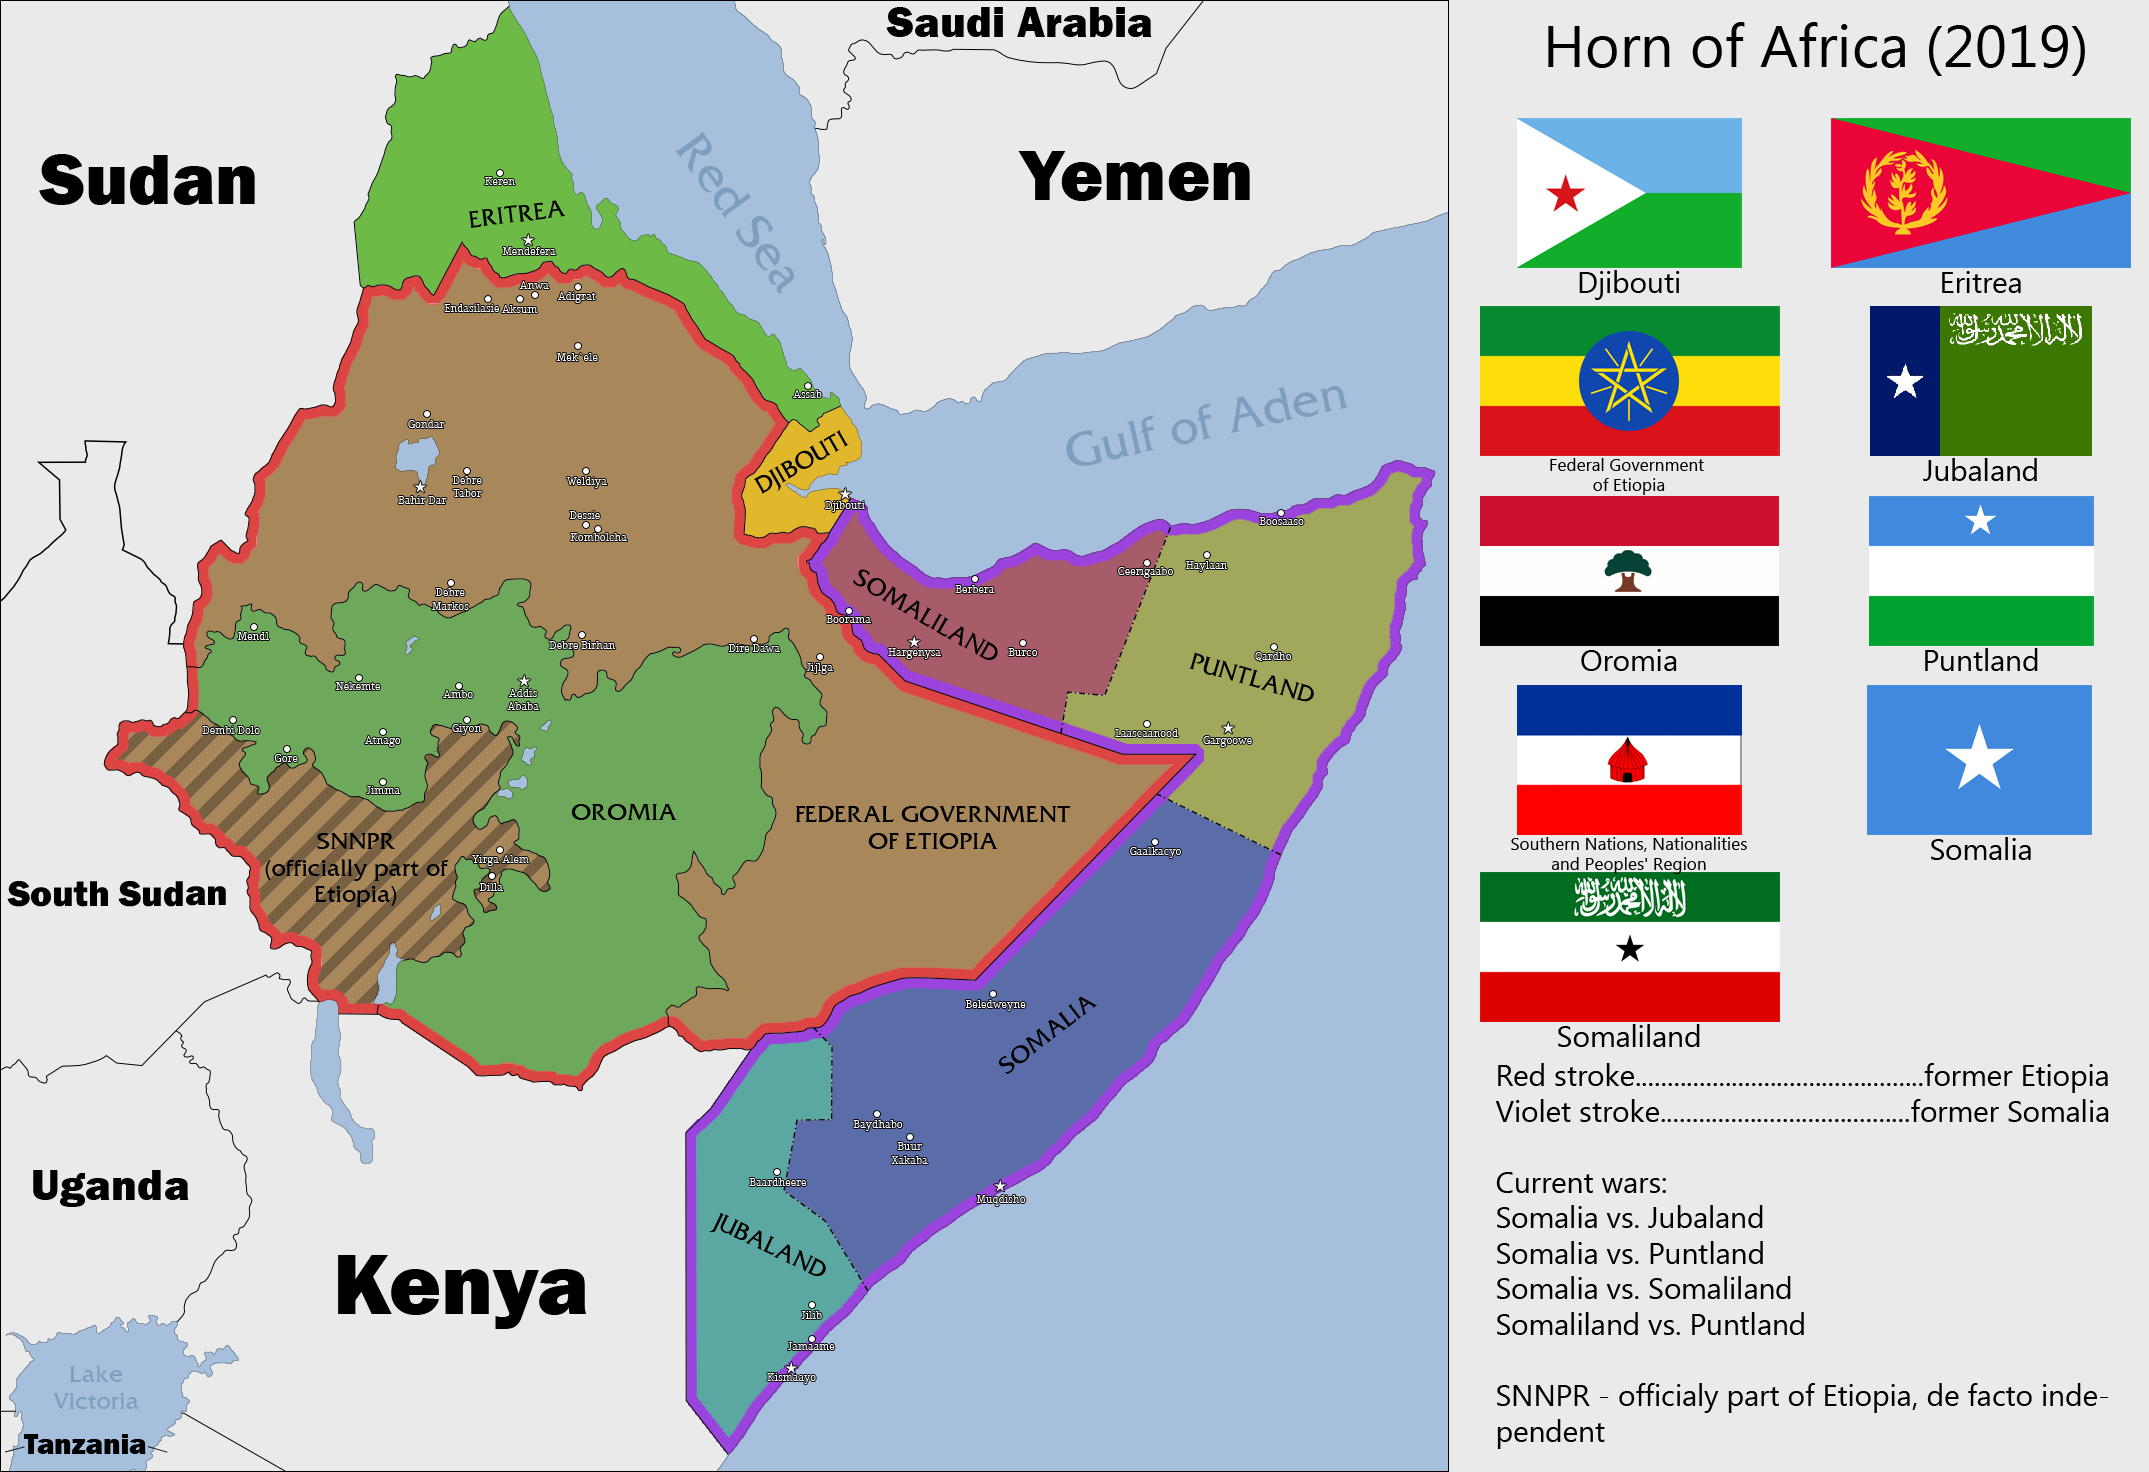 Horn of Africa Map Horn of Africa 2019 by